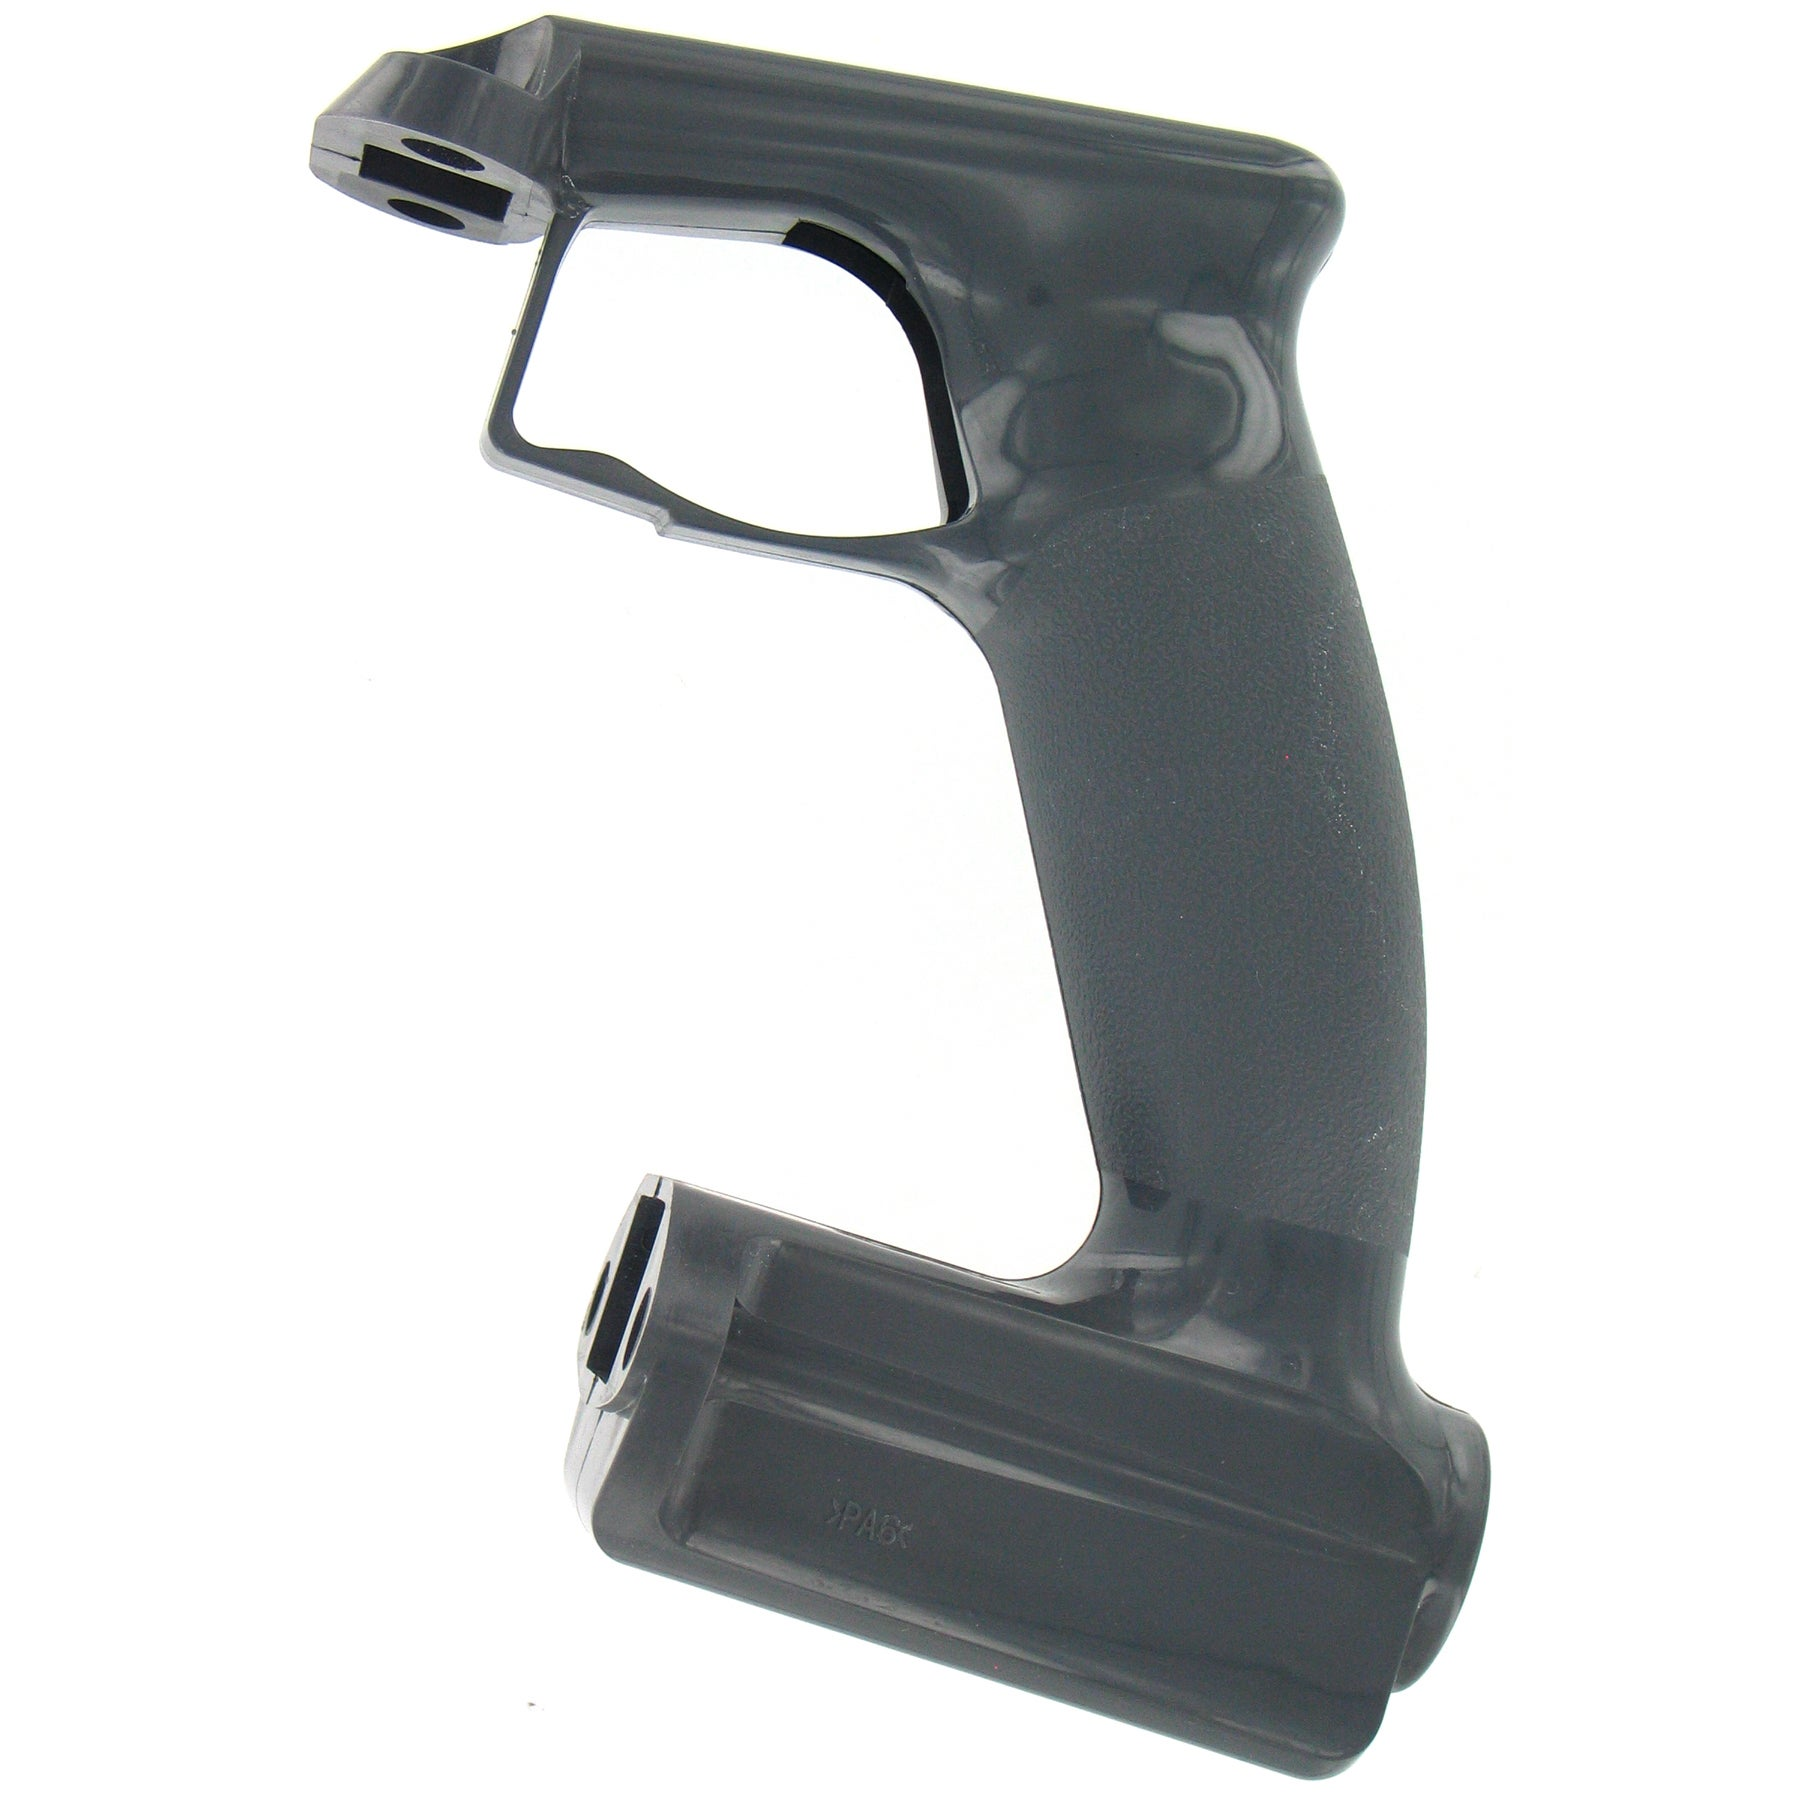 Bosch Skil 1619X01363 Rear Handle Assembly For Skil HD77 ...